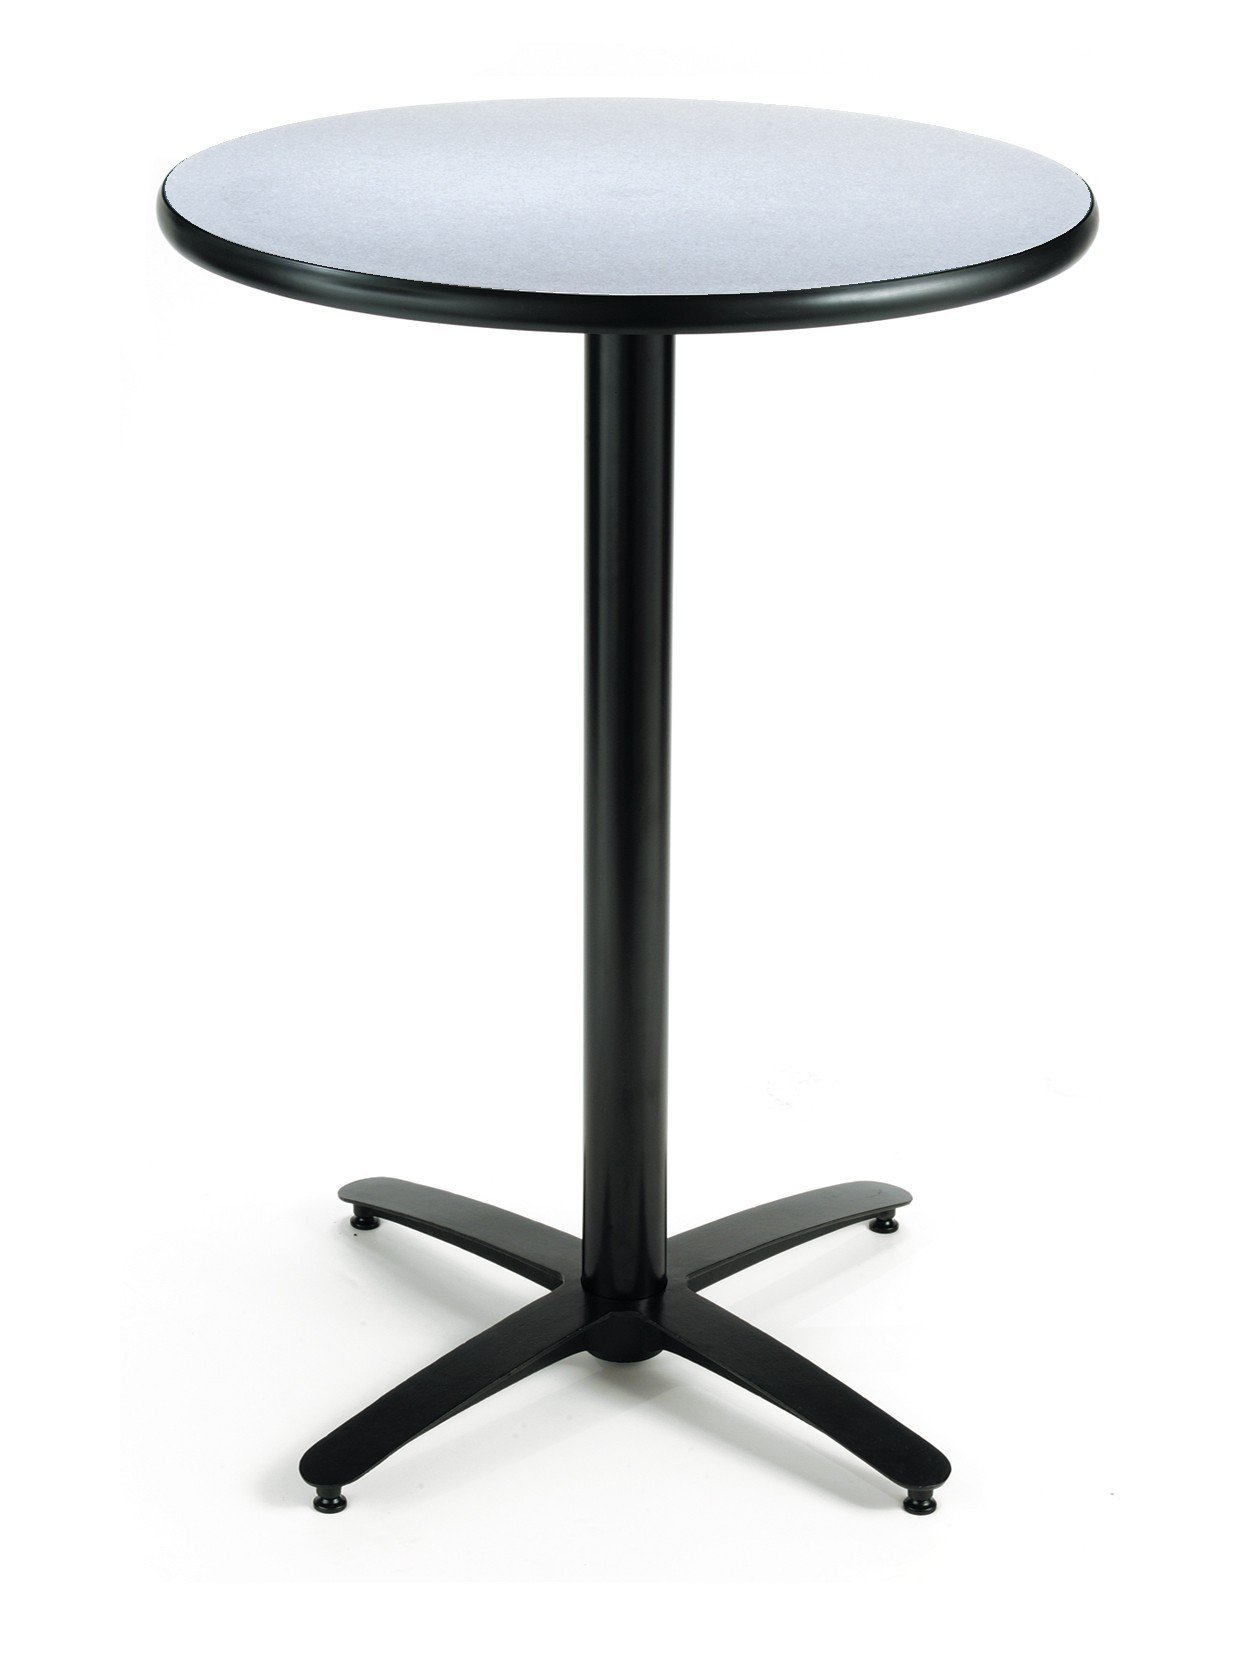 KFI Seating Round Bar Height Pedestal Table with Arched X Base, Commercial Grade, 30-Inch, Grey Nebula Laminate, Made in the USA by KFI Seating